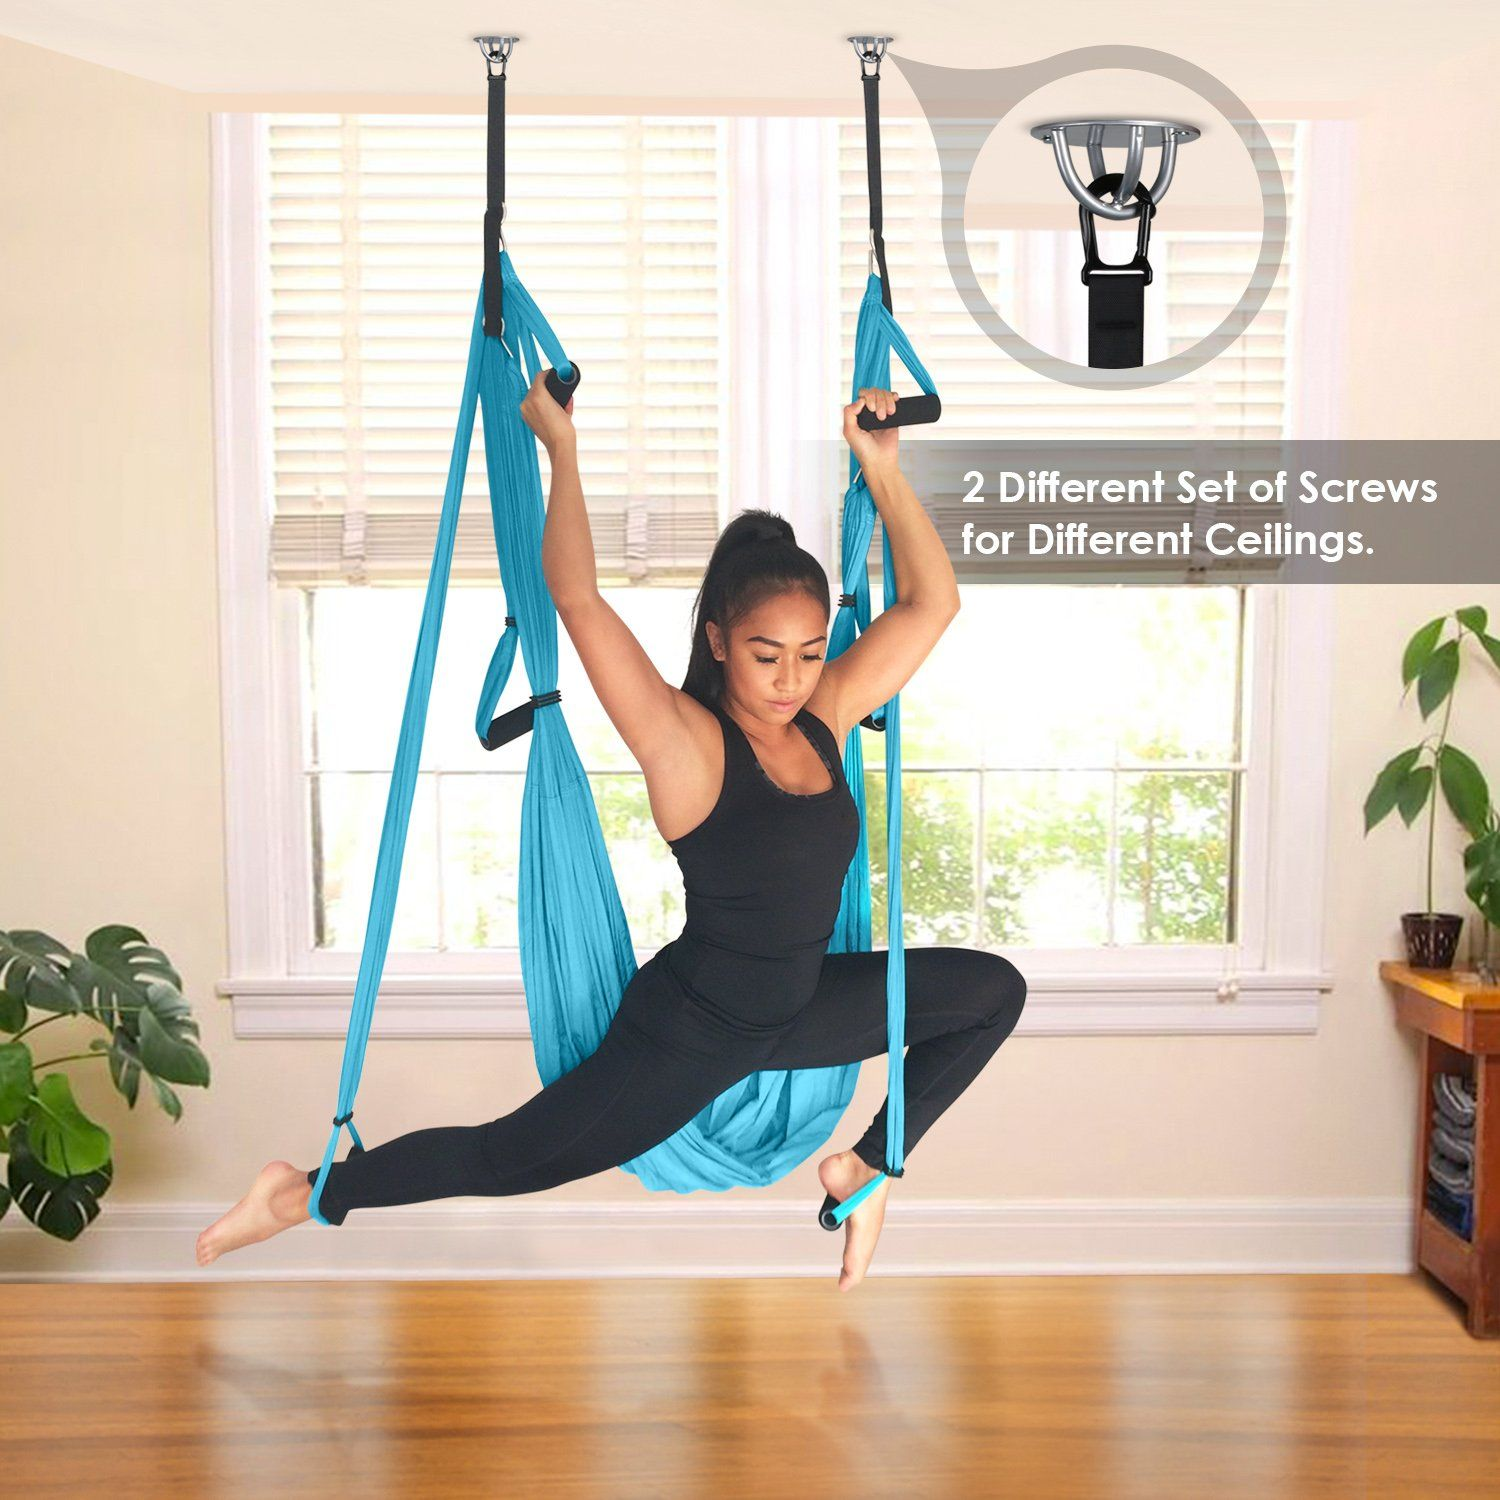 Intey Aerial Yoga Flying Yoga Swing Yoga Hammock Trapeze Sling Inversion Tool For Gym Home Fitness Check This Awe Yoga Swing Aerial Yoga Yoga Swing Exercises